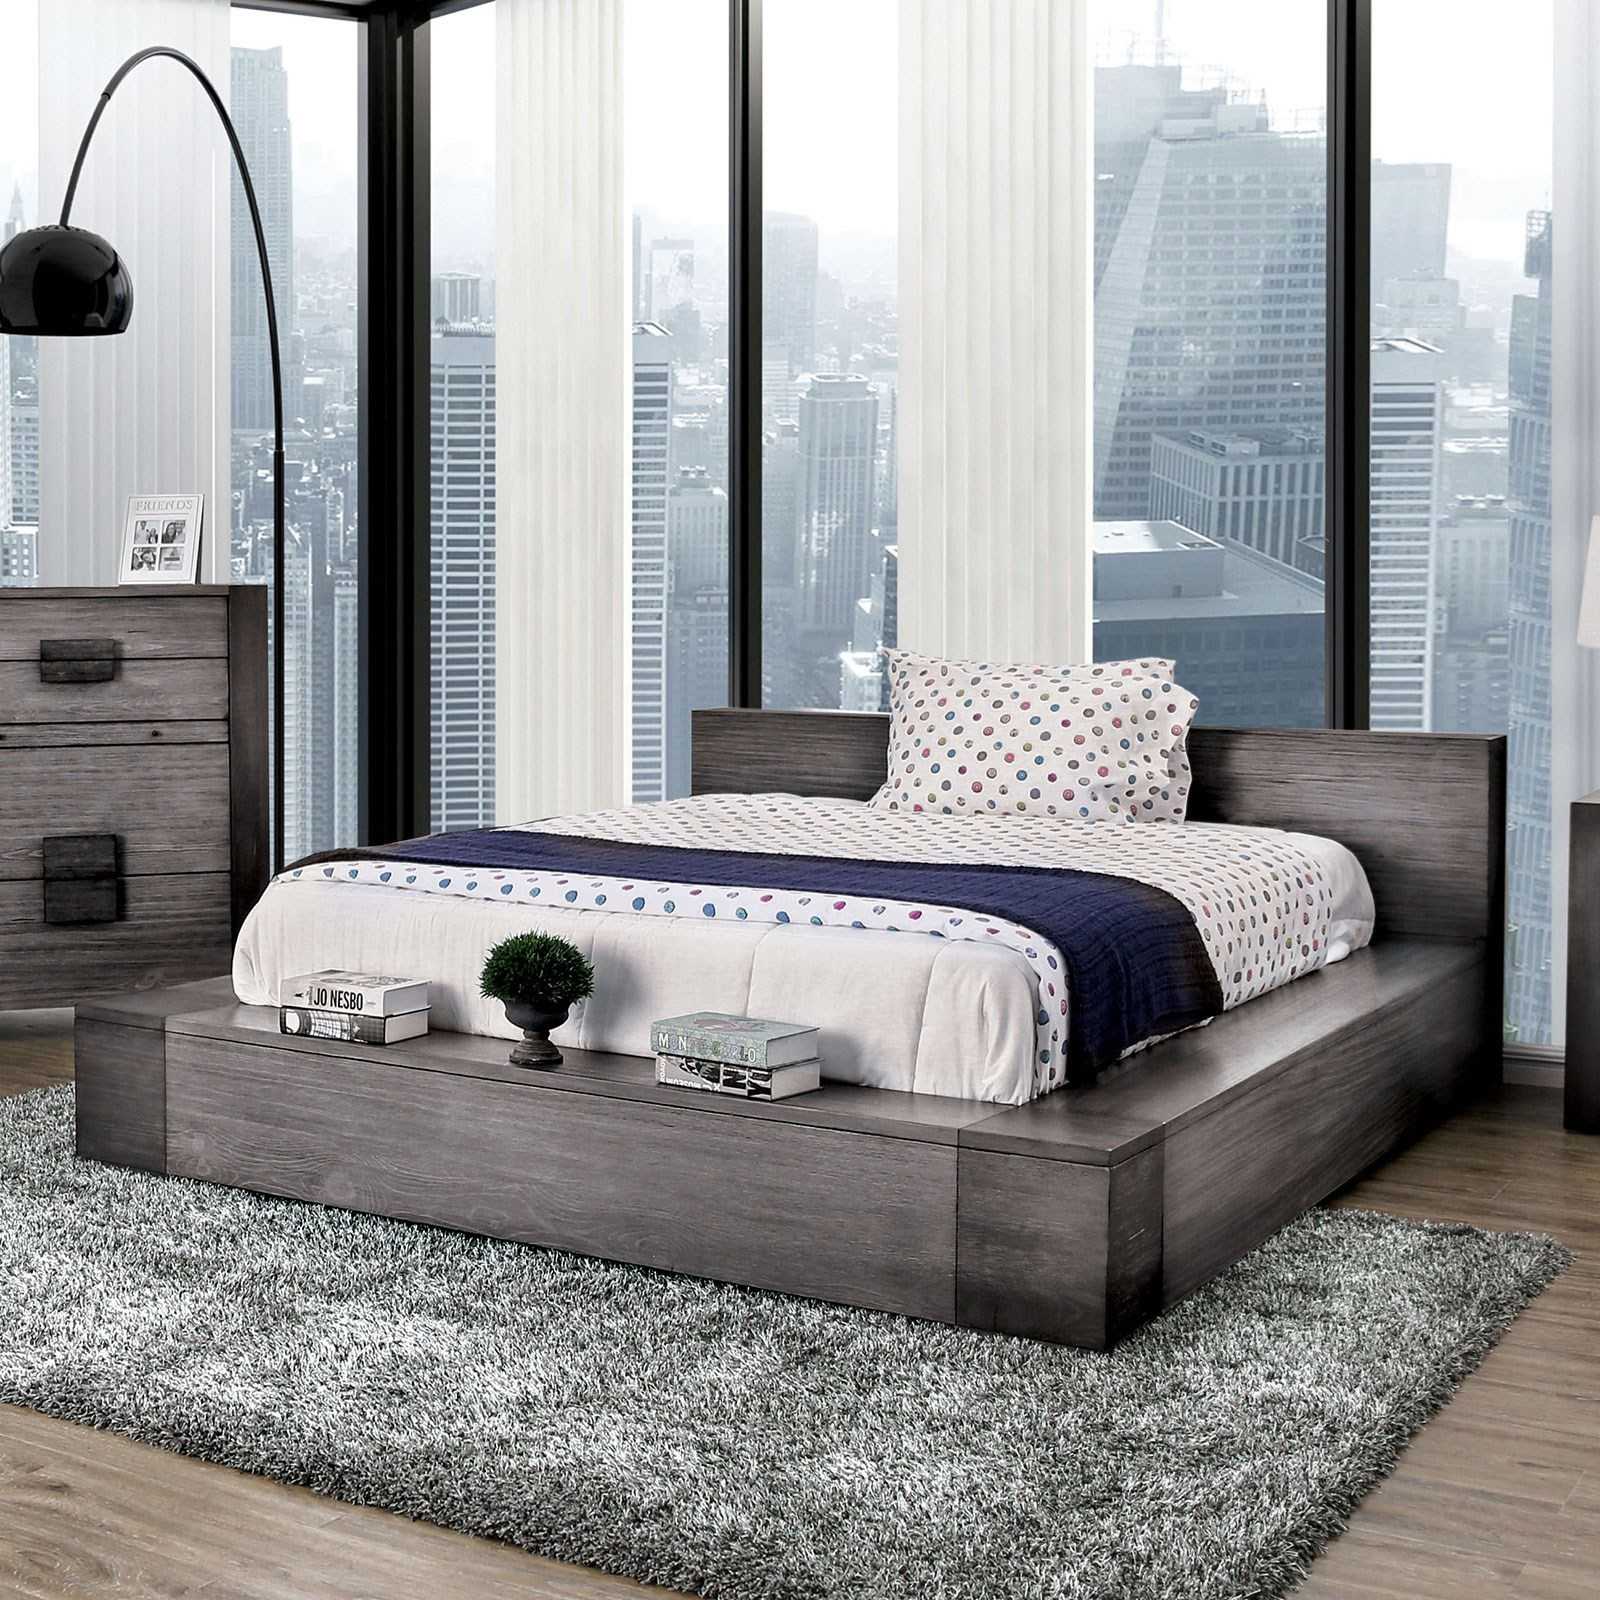 Janeiro Queen Bed at Household Furniture